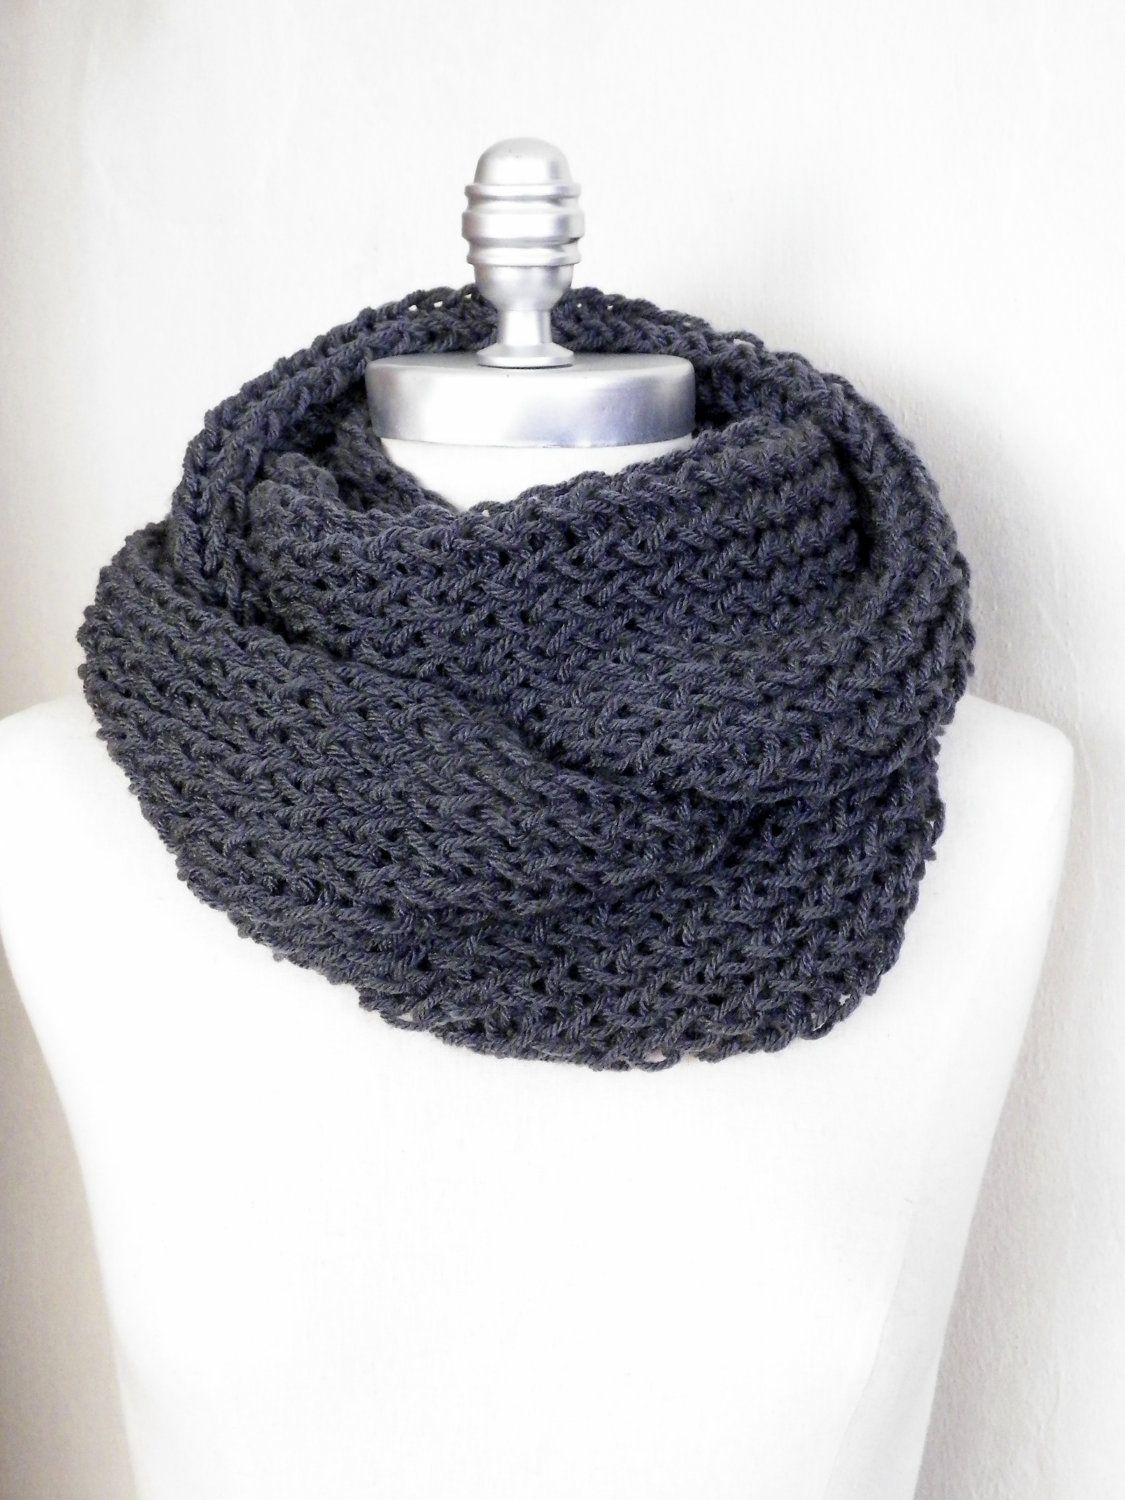 Charcoal Gray Scarf, Infinity Scarf, Knit Fall Scarf, Loop Scarf ...